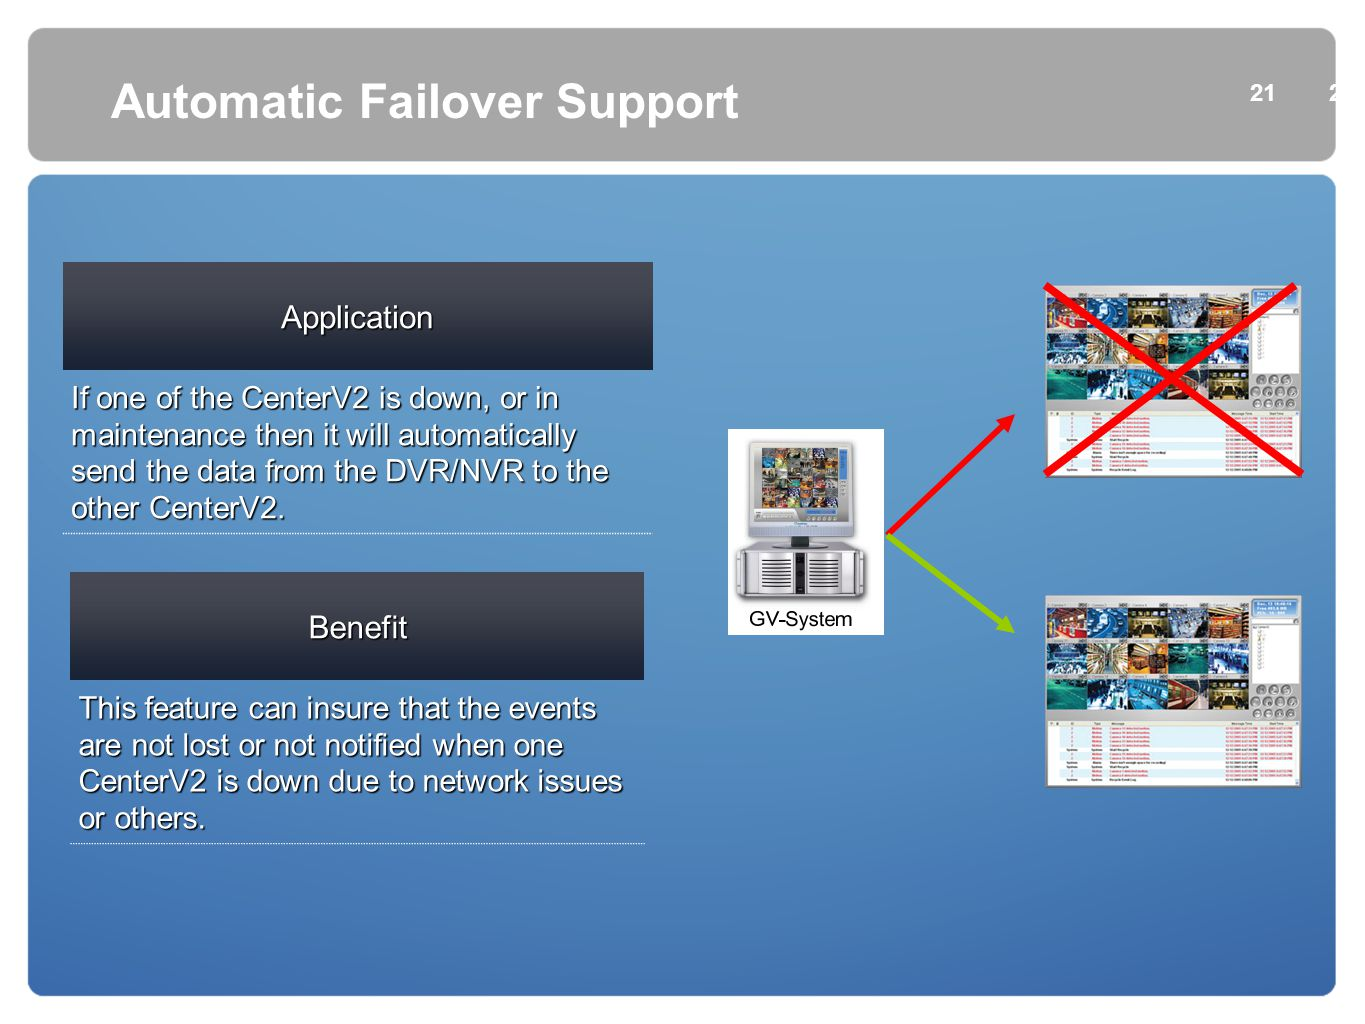 Automatic Failover Support